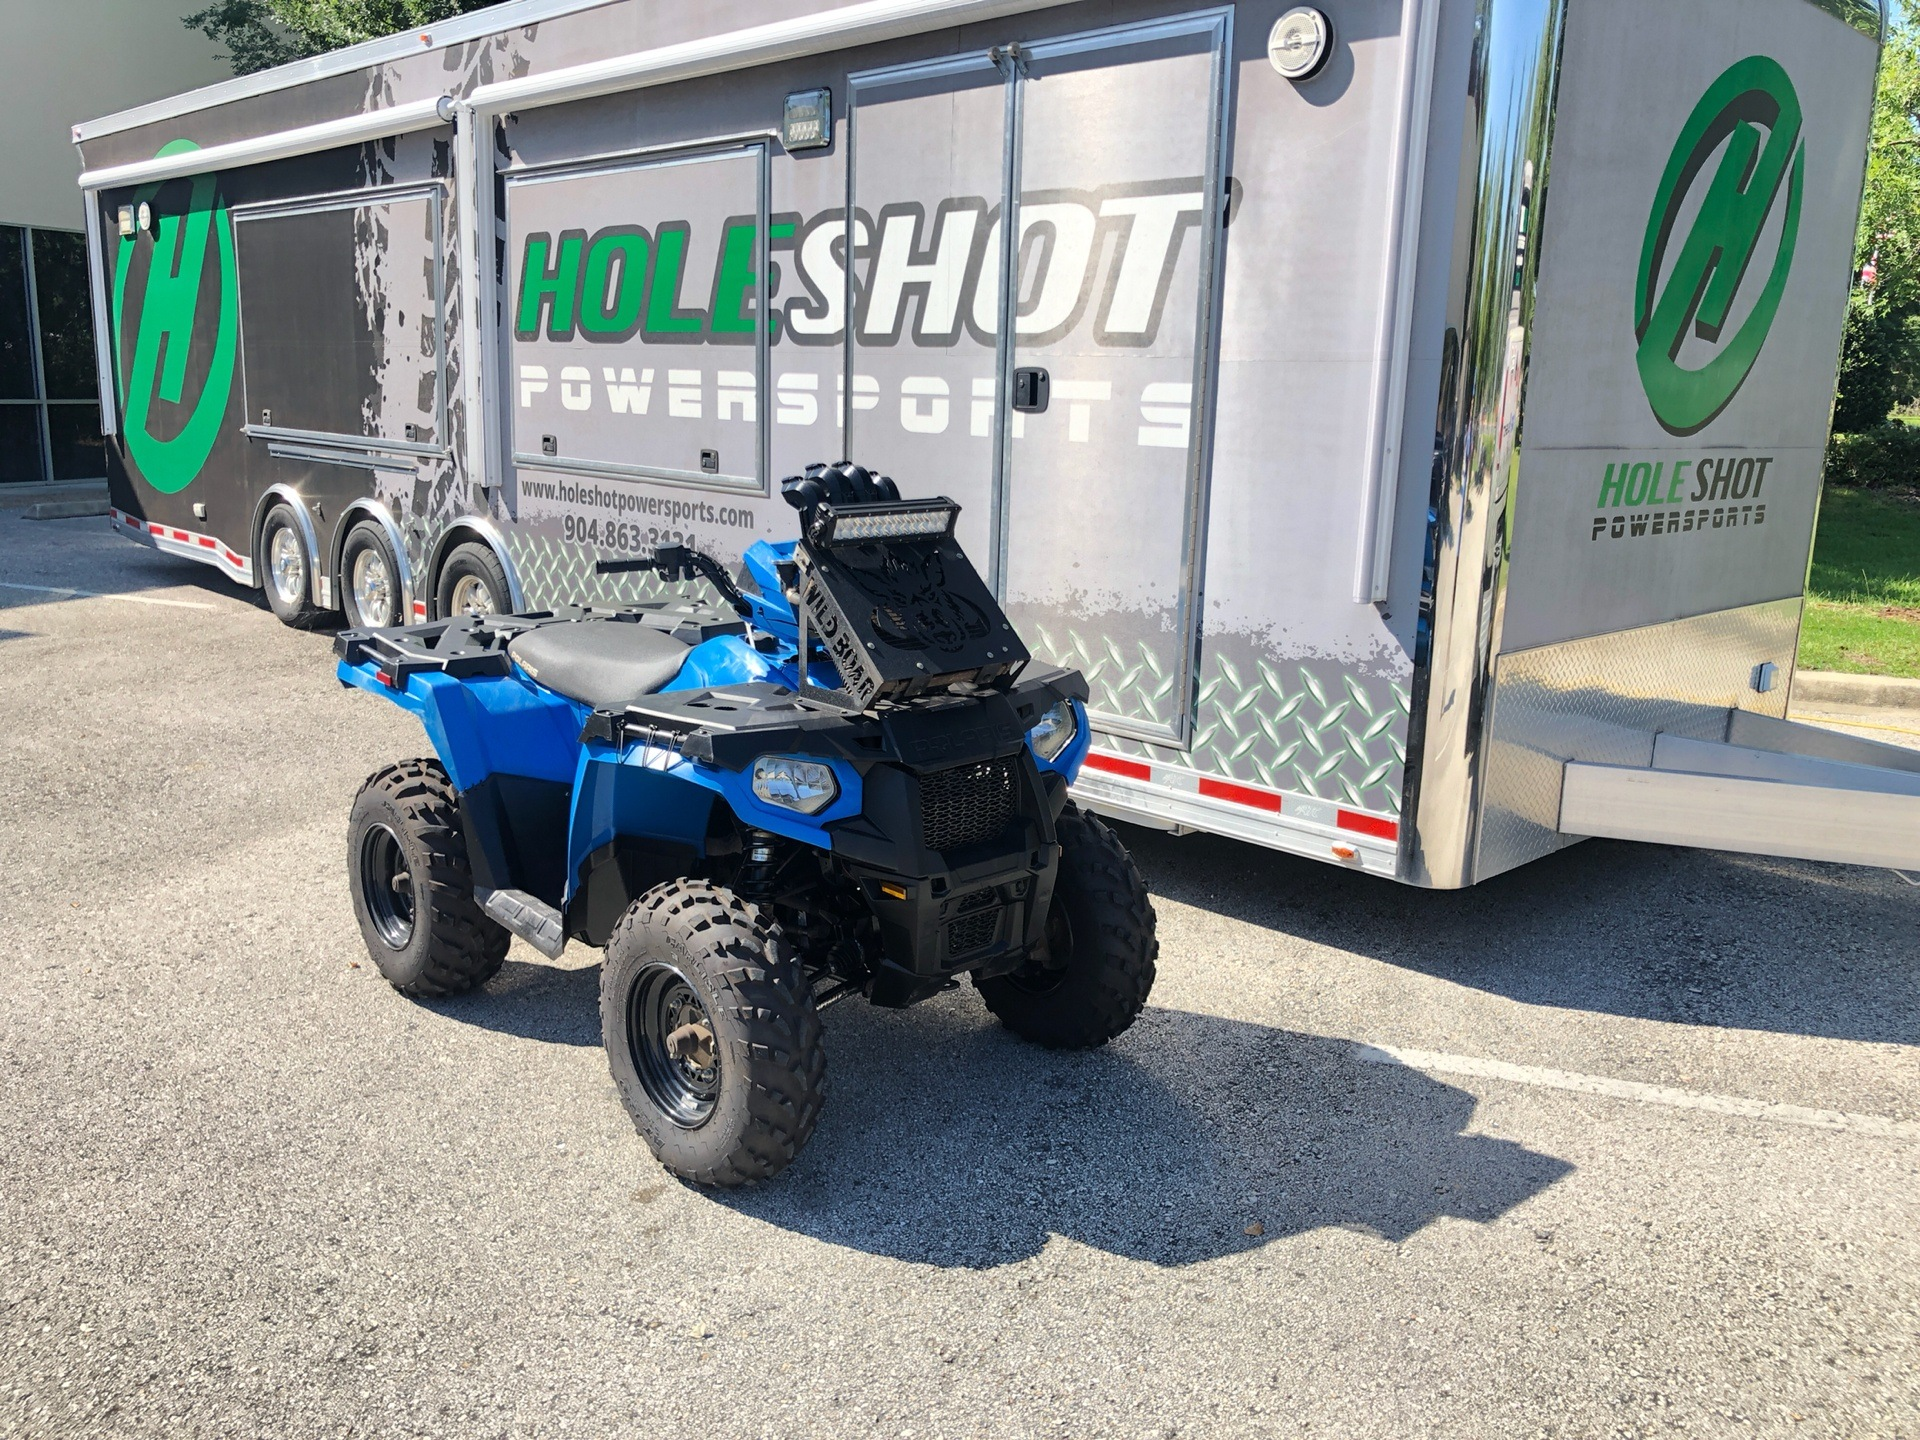 2019 Polaris Sportsman 570 in Fleming Island, Florida - Photo 4